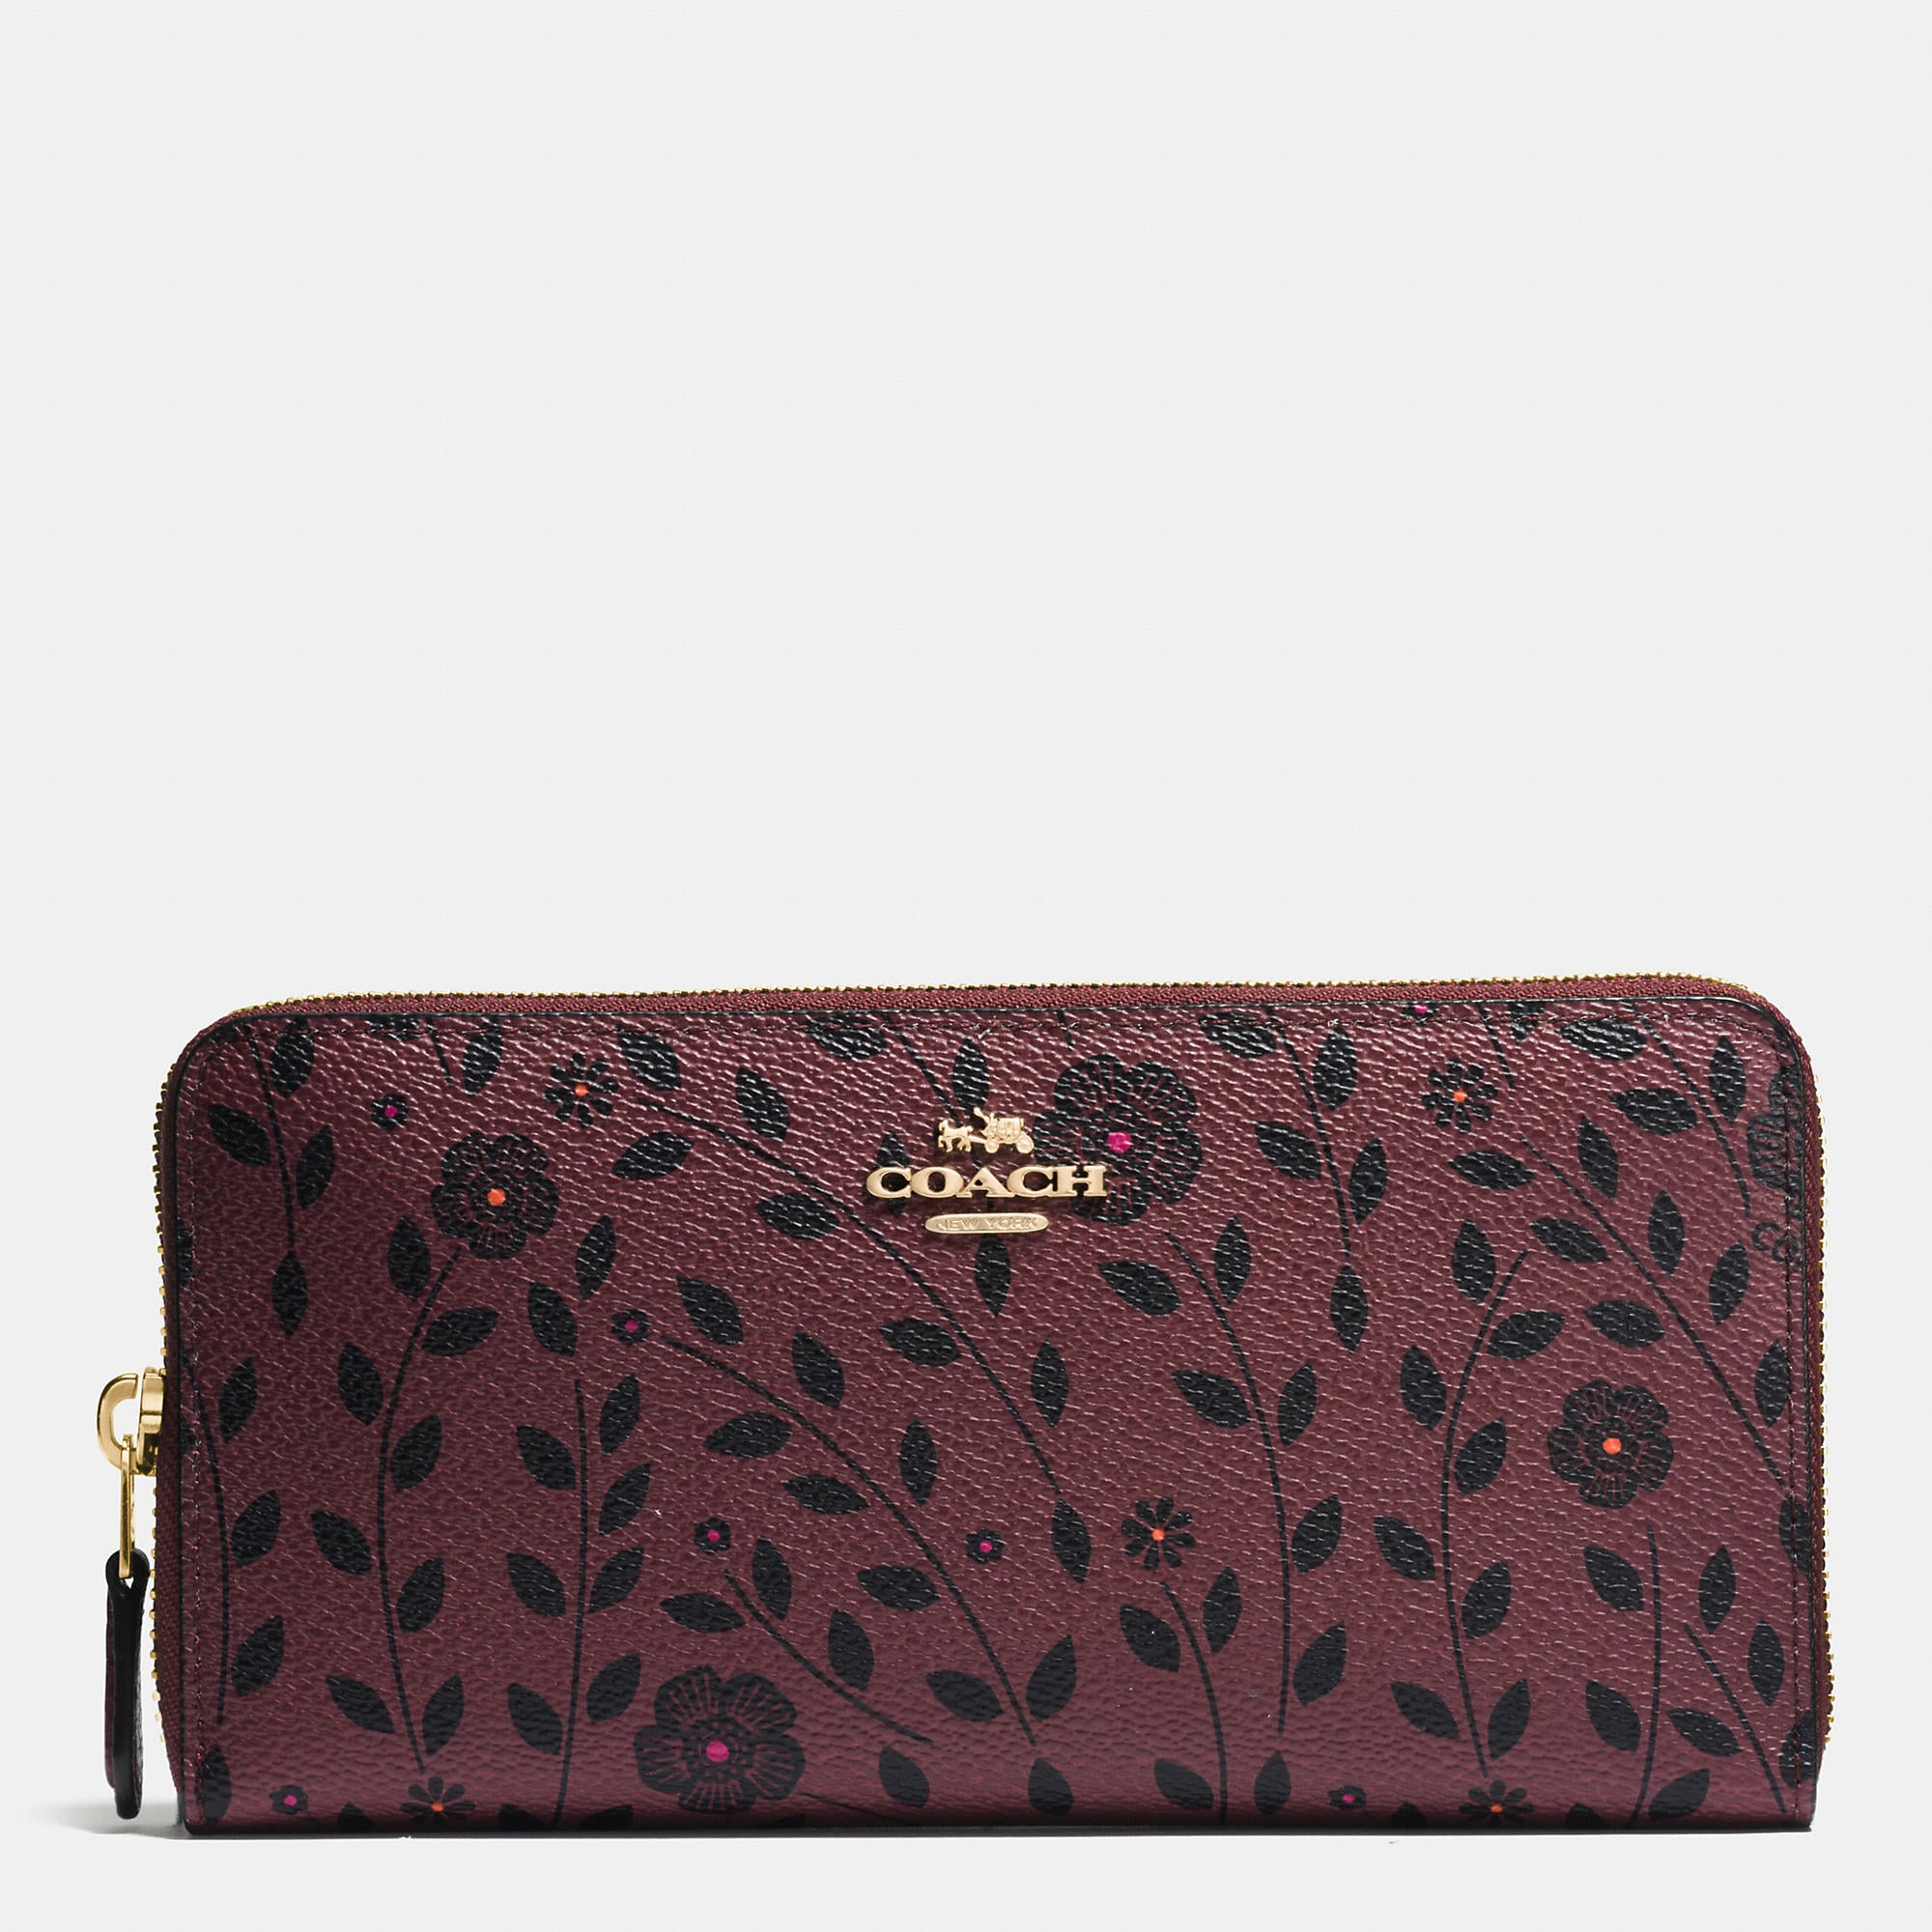 Coach Accordion Zip Wallet In Willow Floral Print Canvas